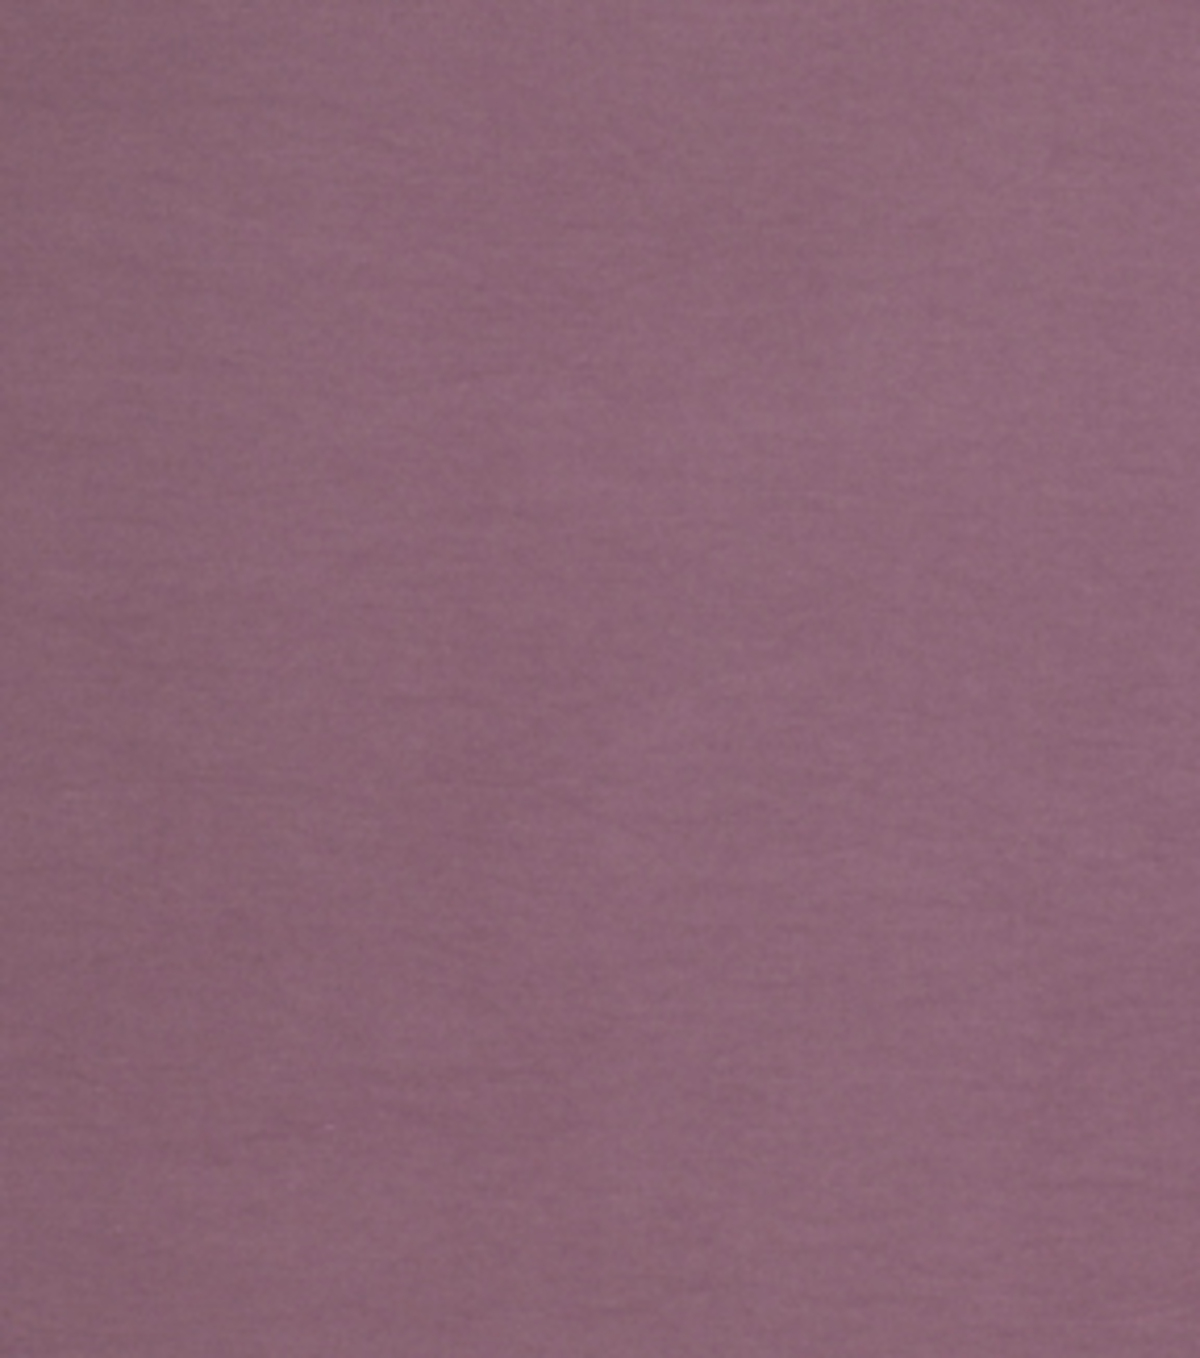 Smc Designs Upholstery Fabric-03045 / Lilac